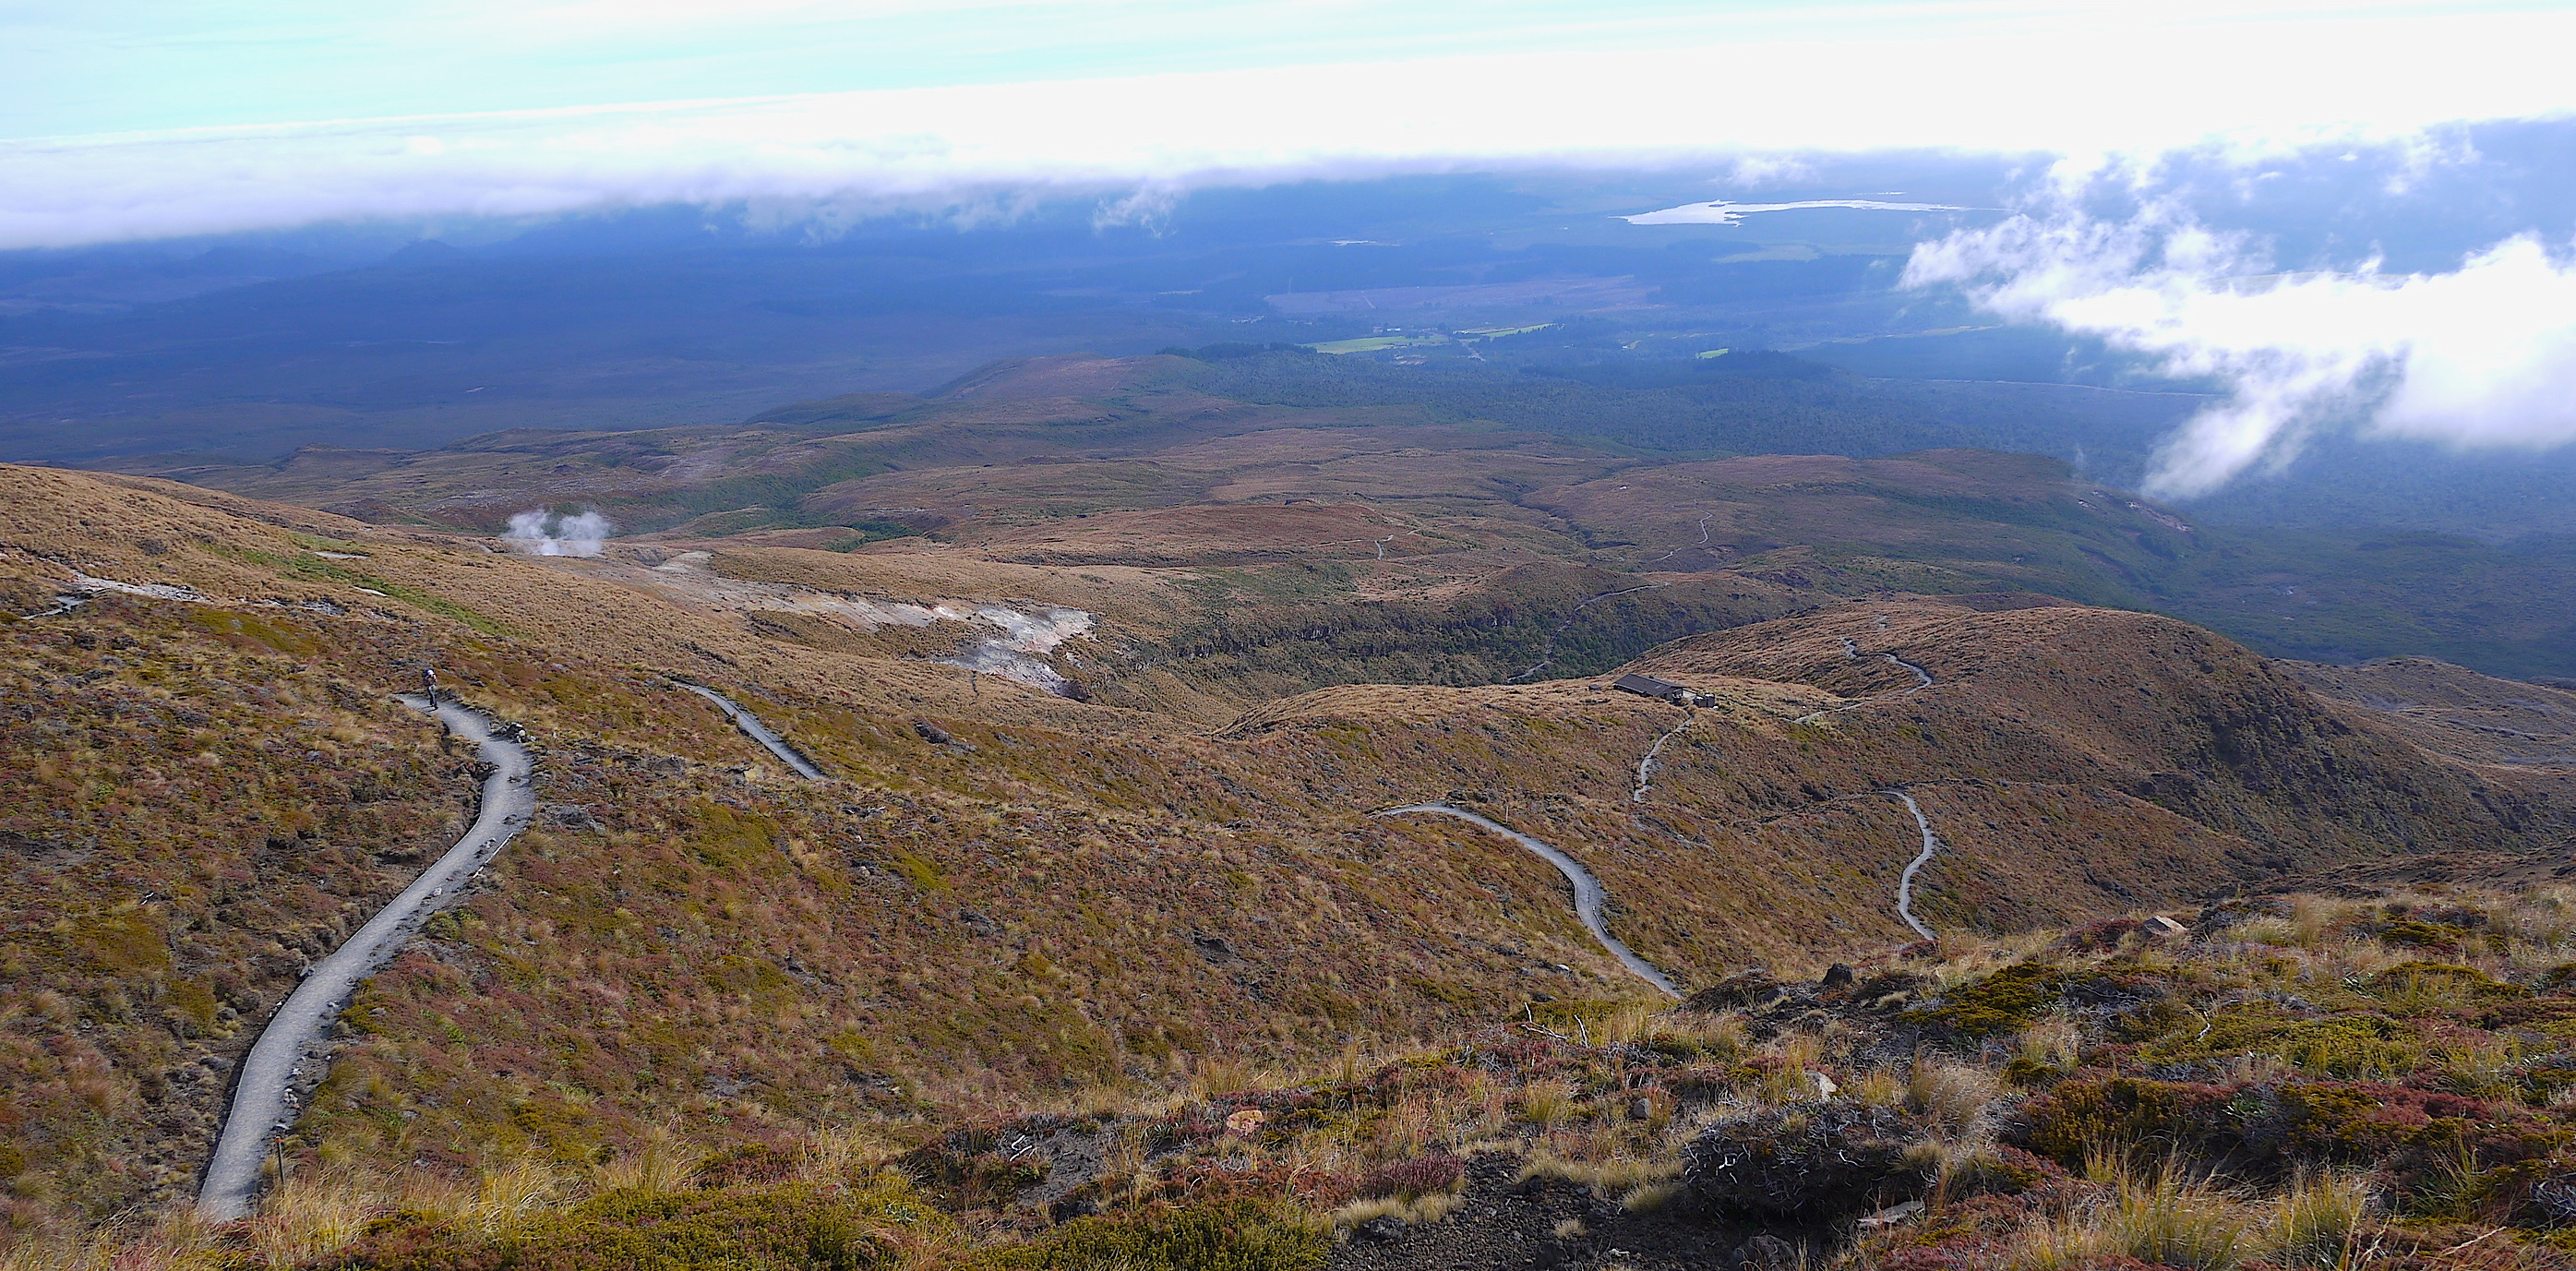 The beautifully graded pathway of Tongariro, snaking down the valley.